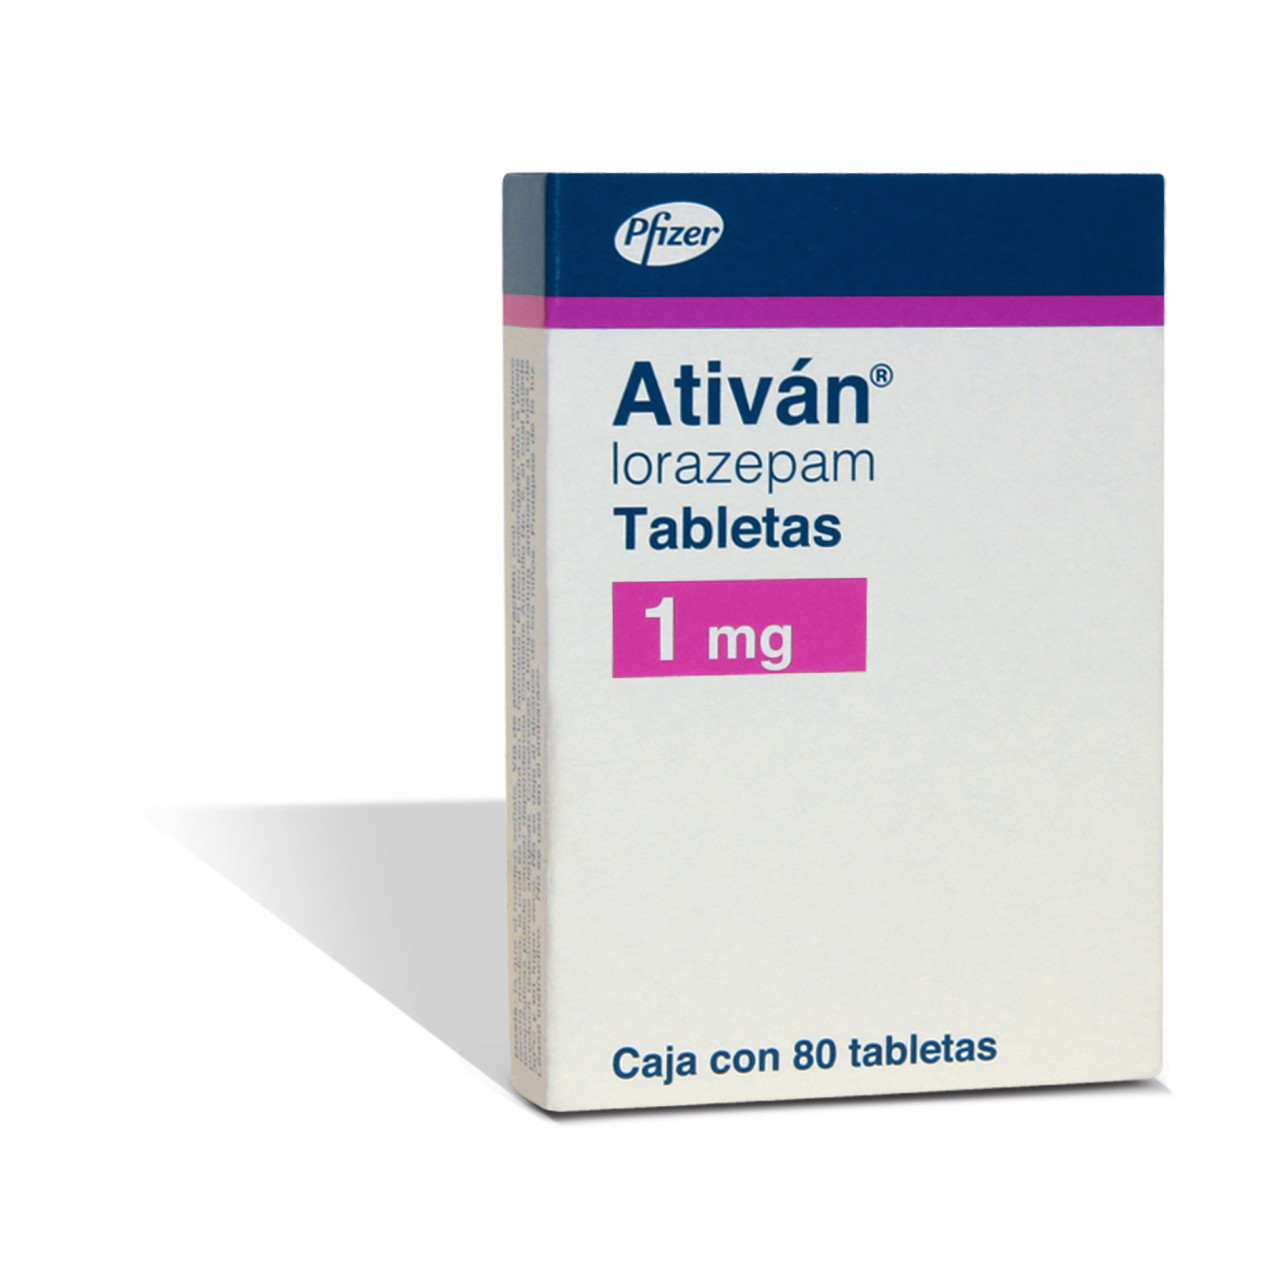 where to buy prescription ativan online